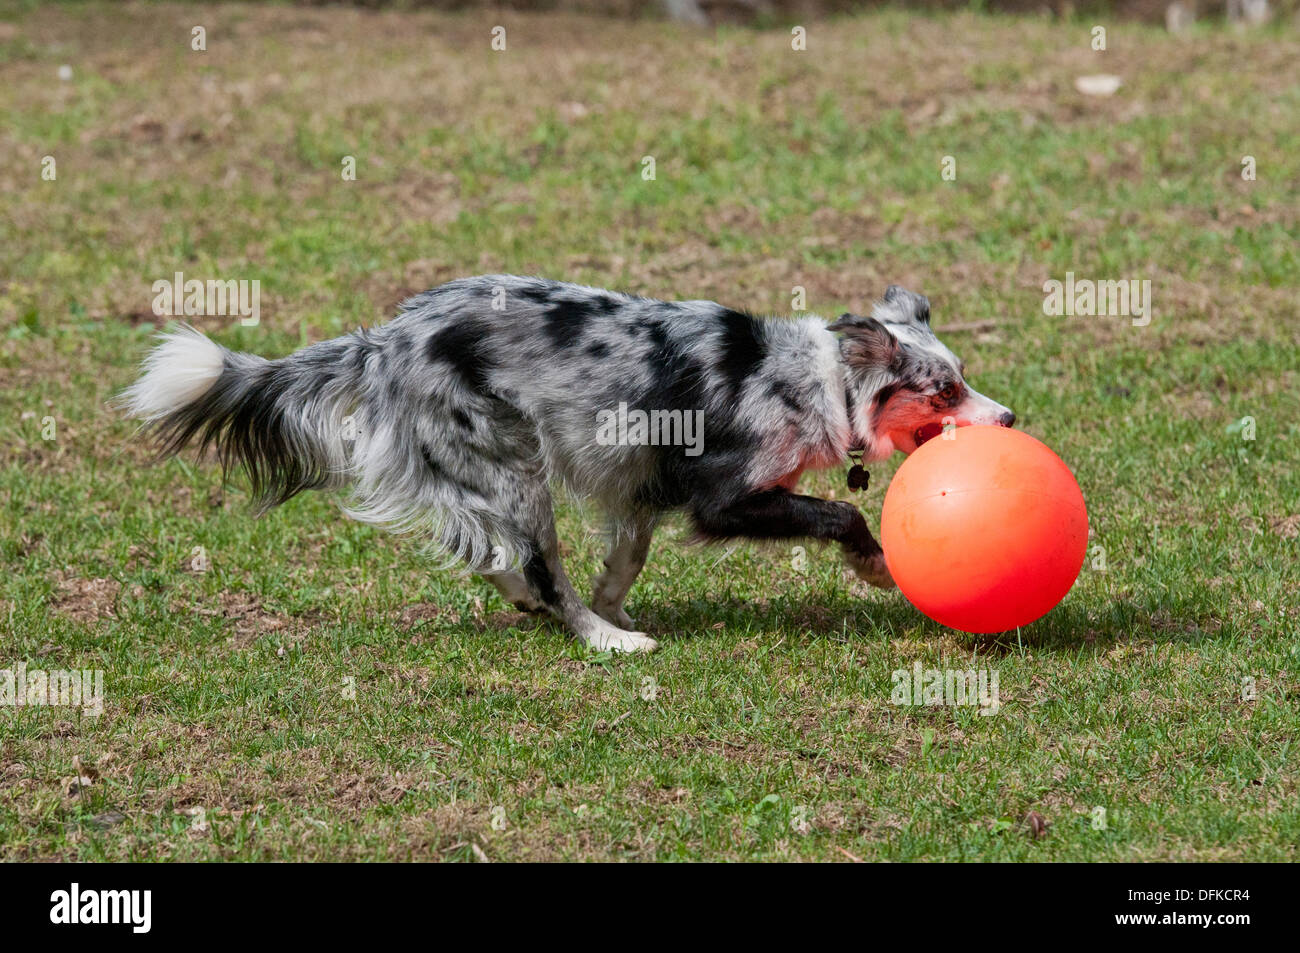 Border collie 'herding' (chasing) an exercise ball - Stock Image